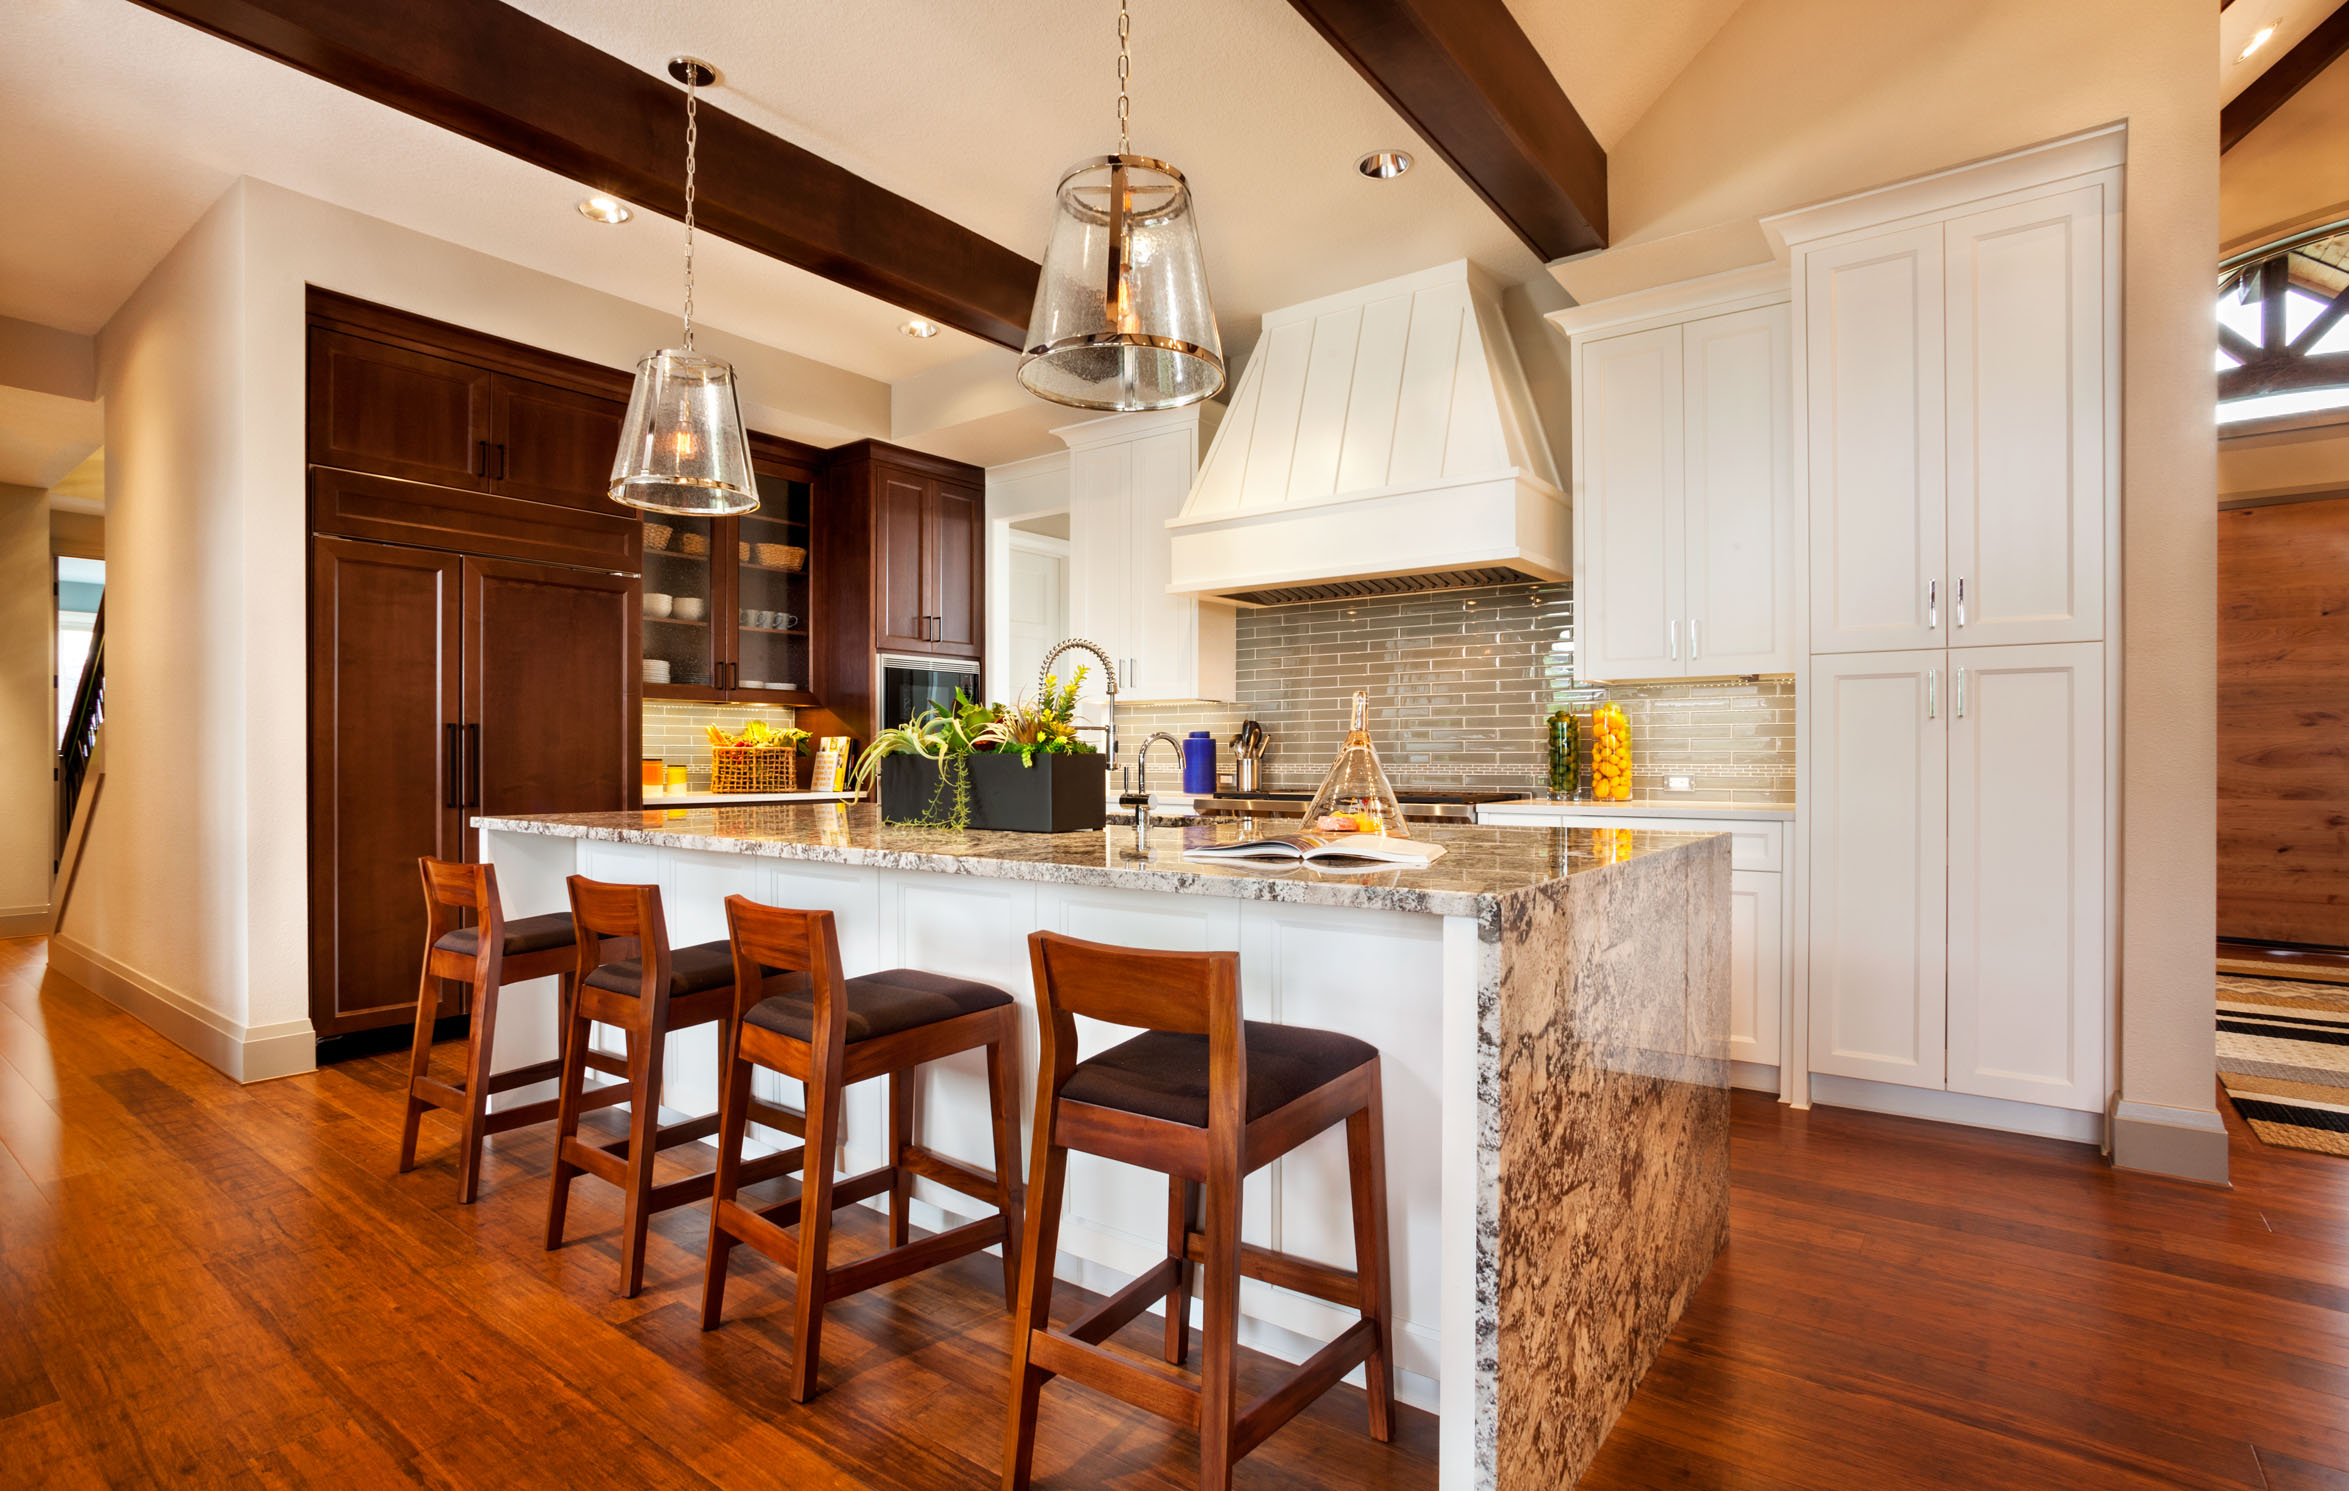 kitchens that blend contemporary and traditional interiors, white kitchen cabinets, kitchen islands